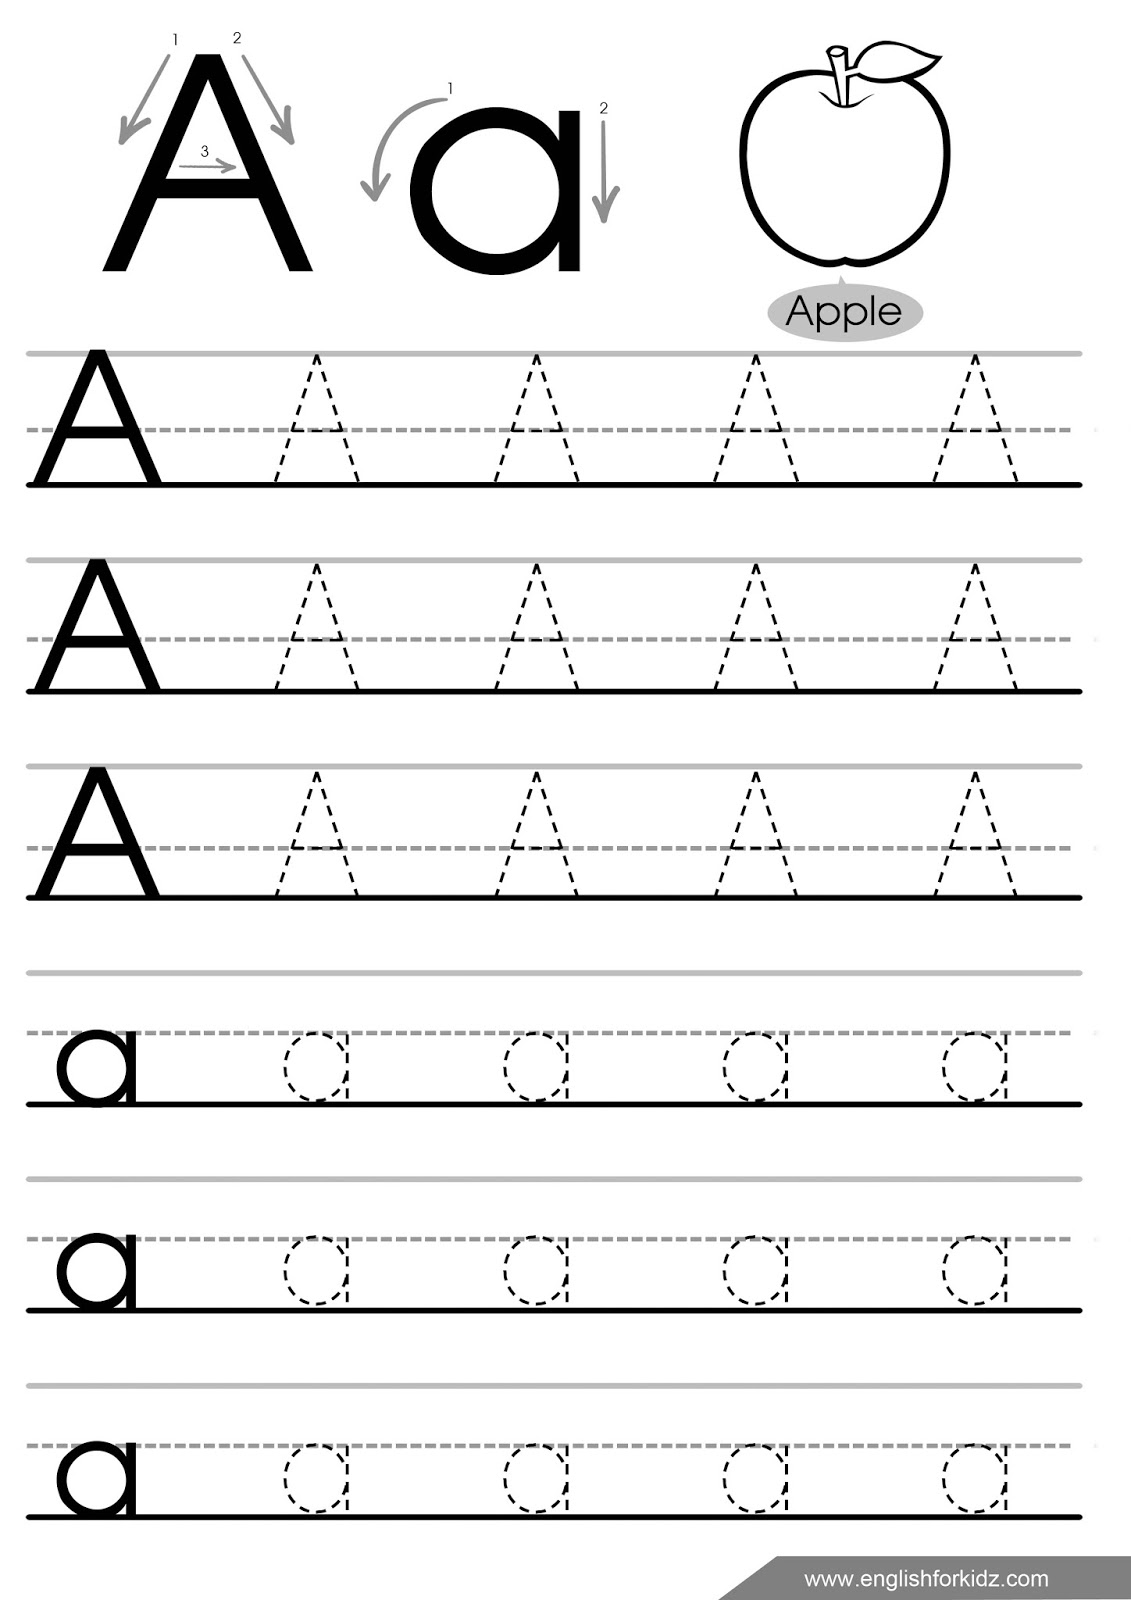 worksheet Trace The Letter S Worksheets letter tracing worksheets letters a j worksheet english for kids